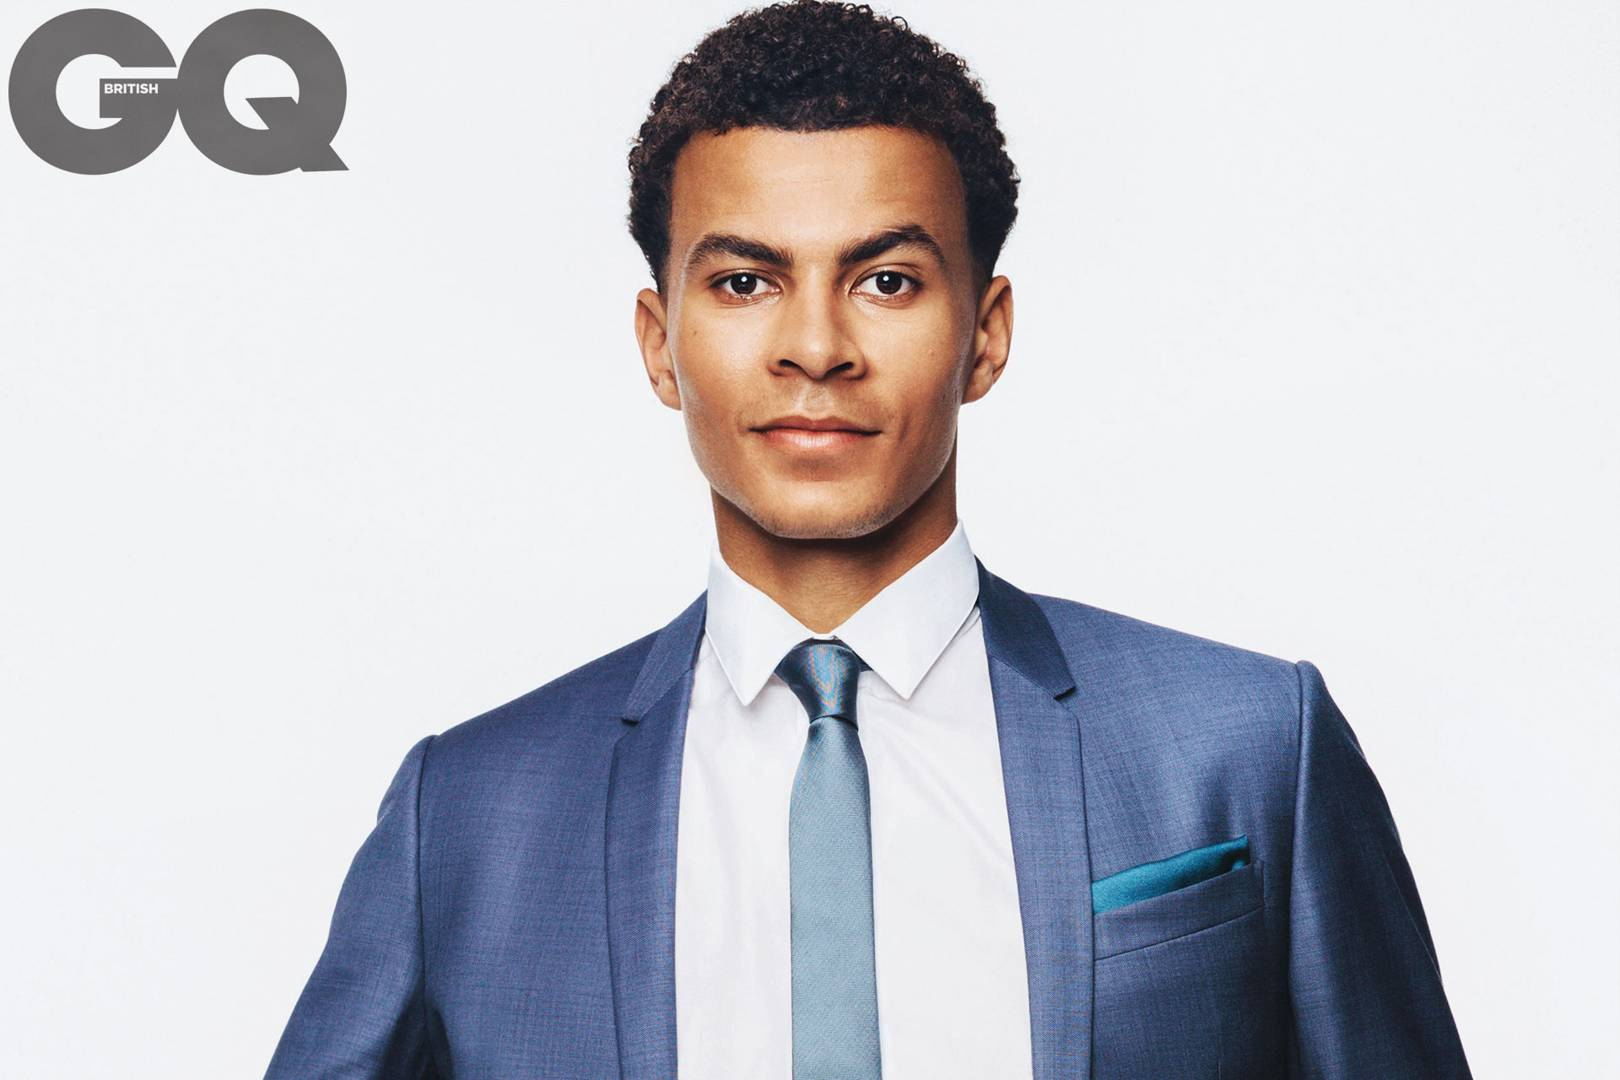 Dele Alli is the homegrown hope of English football